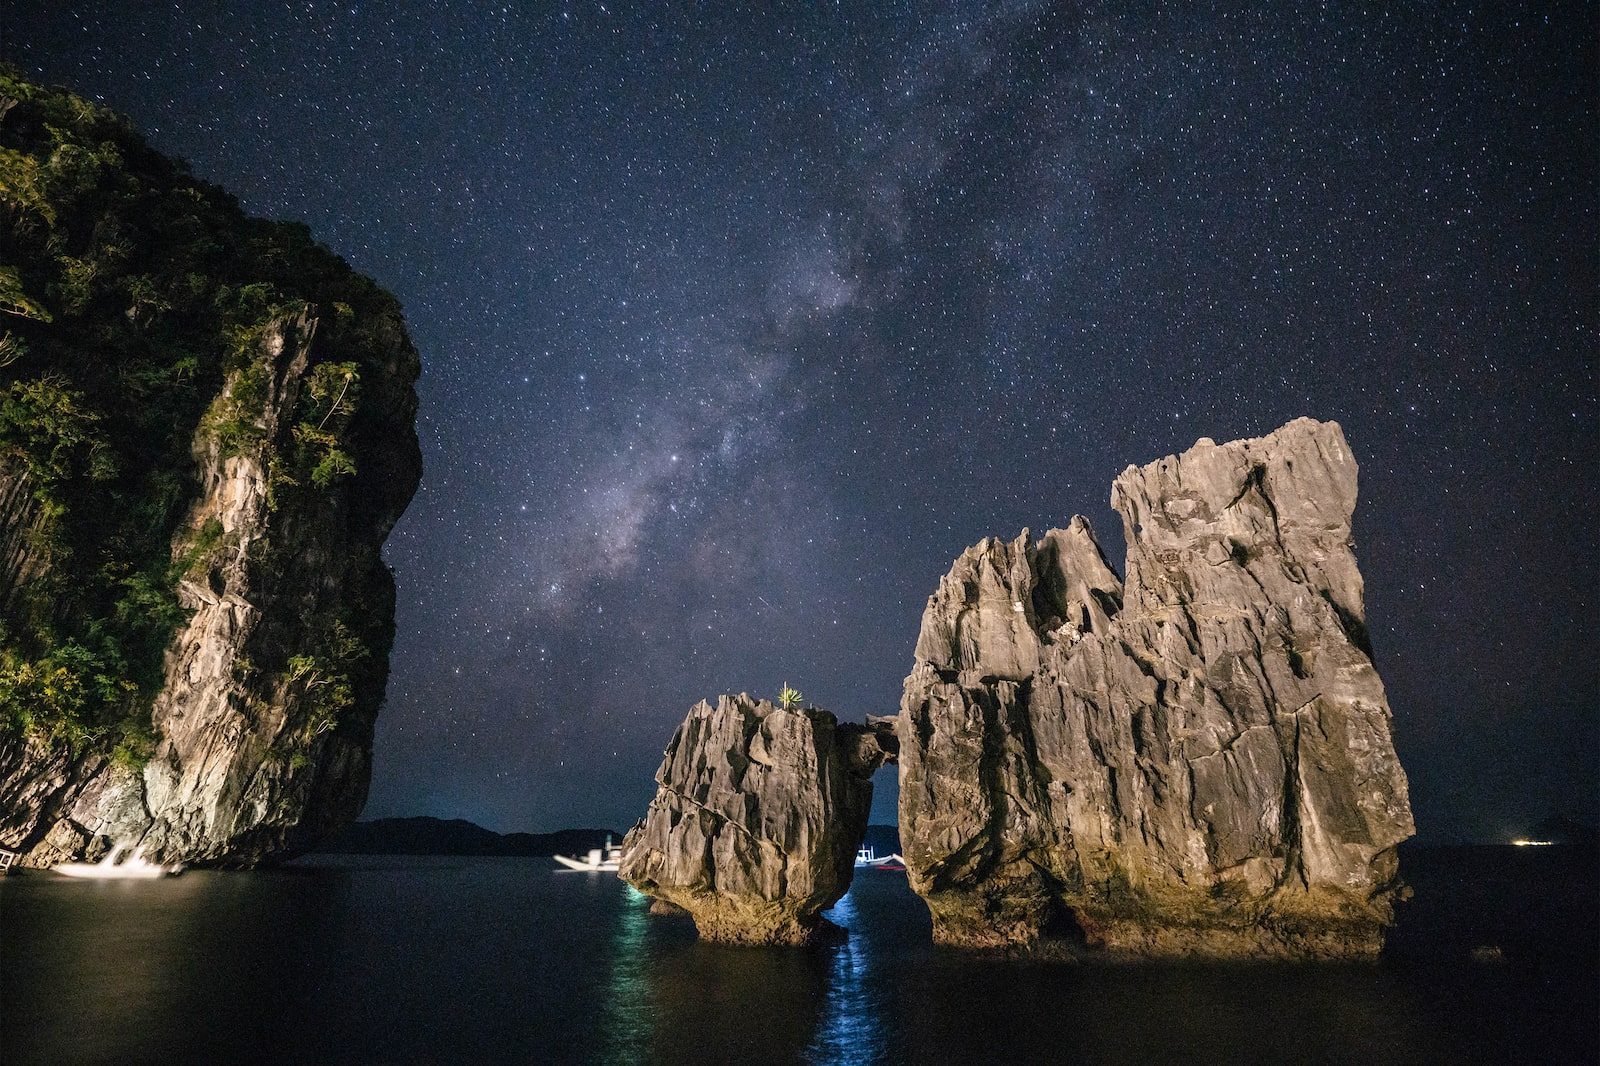 El Nido rock formations against starry night skies